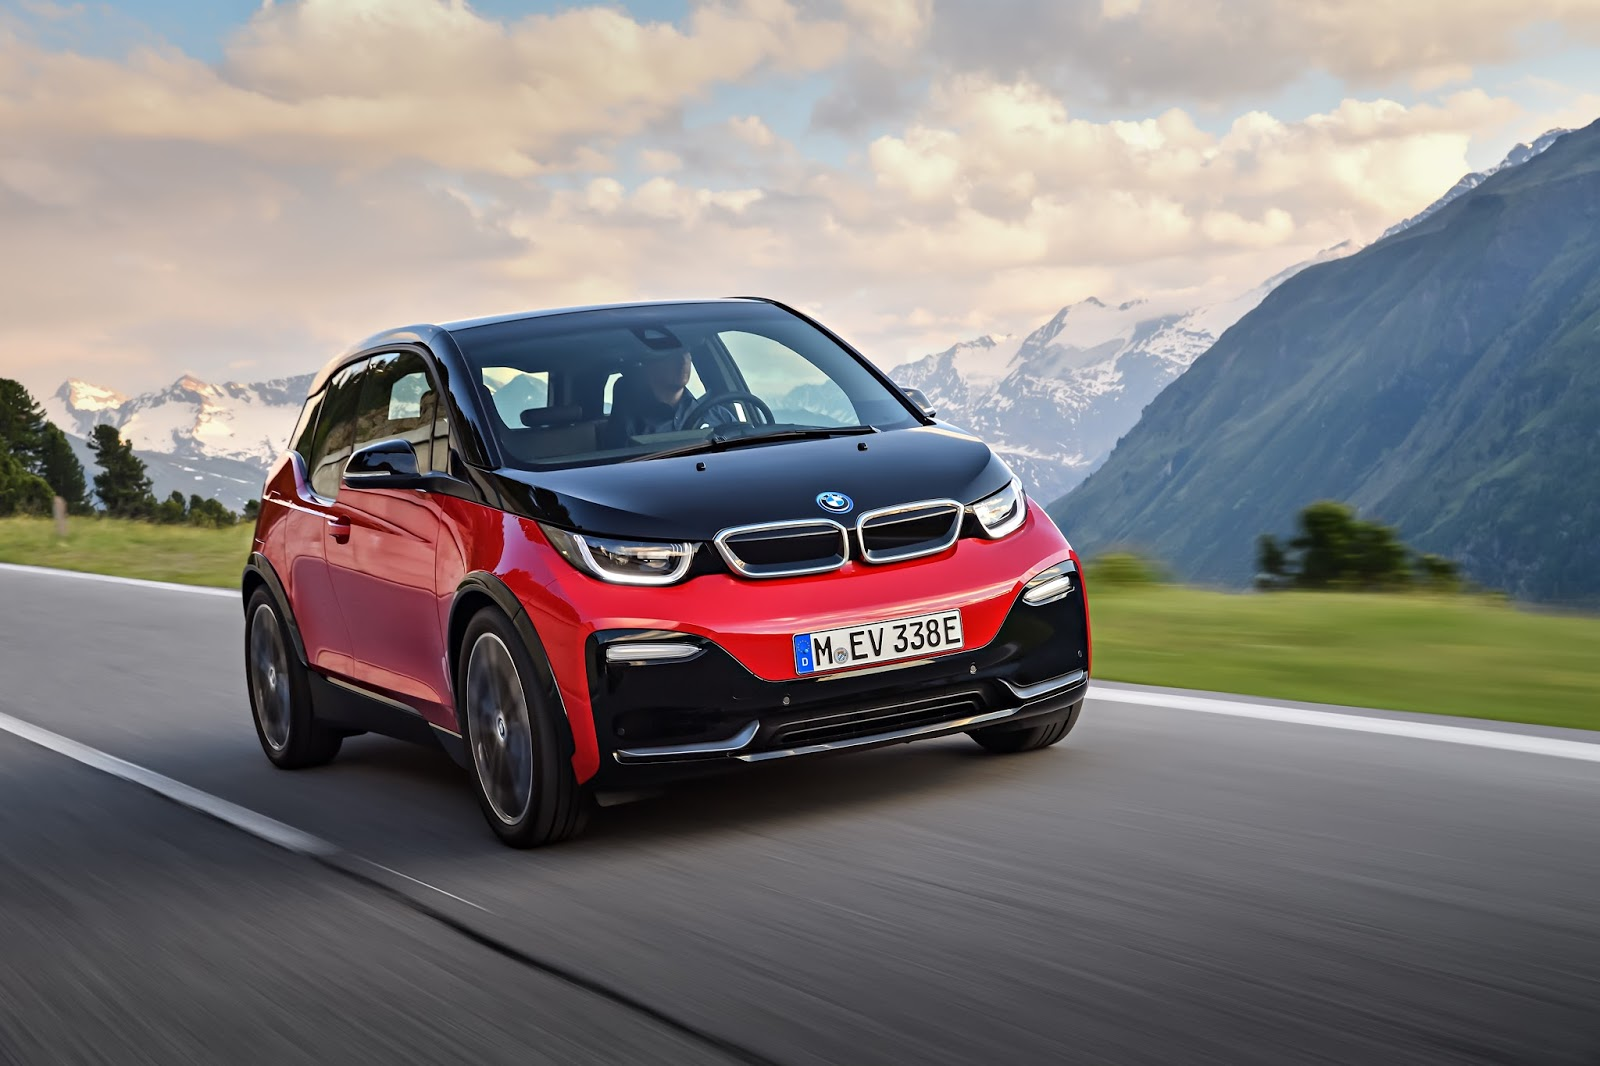 The BMW I3 Leads Way To A New Era Of Mobility It Is Recognized Worldwide As Symbol Technology Sustainability And Intelligent Connectivity In